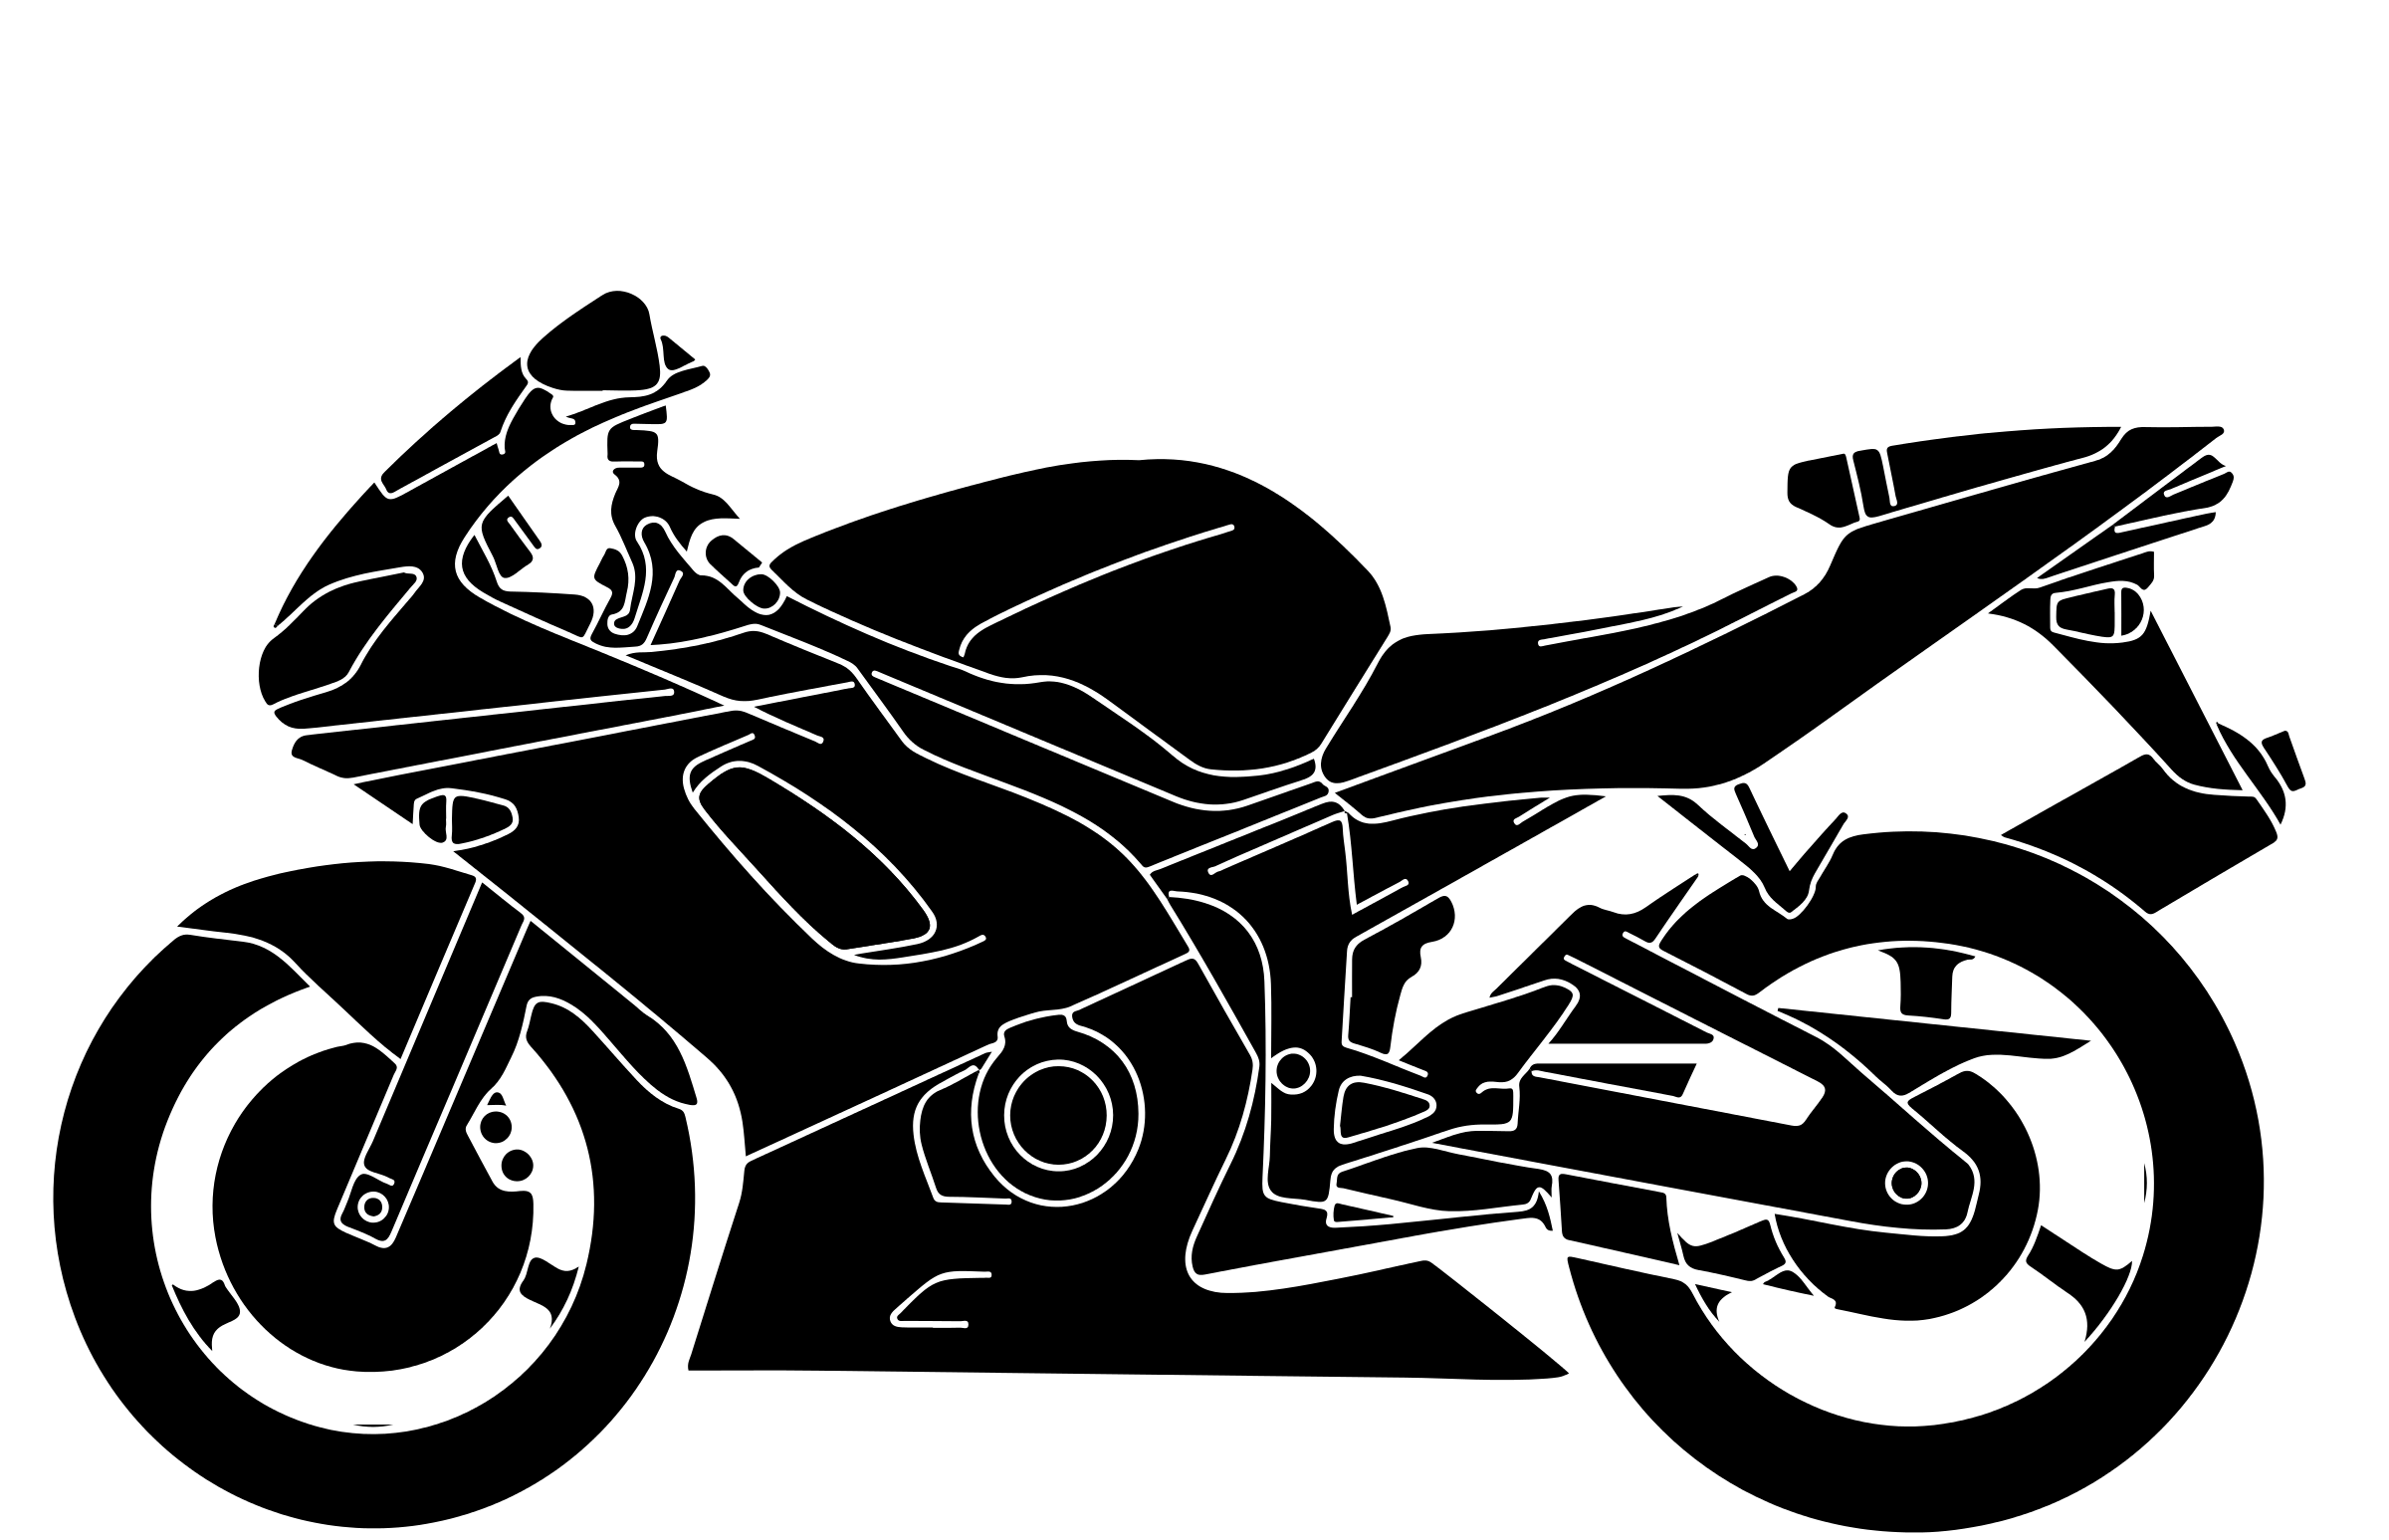 Motorcycle Clipart Png Free Motorcycle Vector Art Download Free Clip Art Free